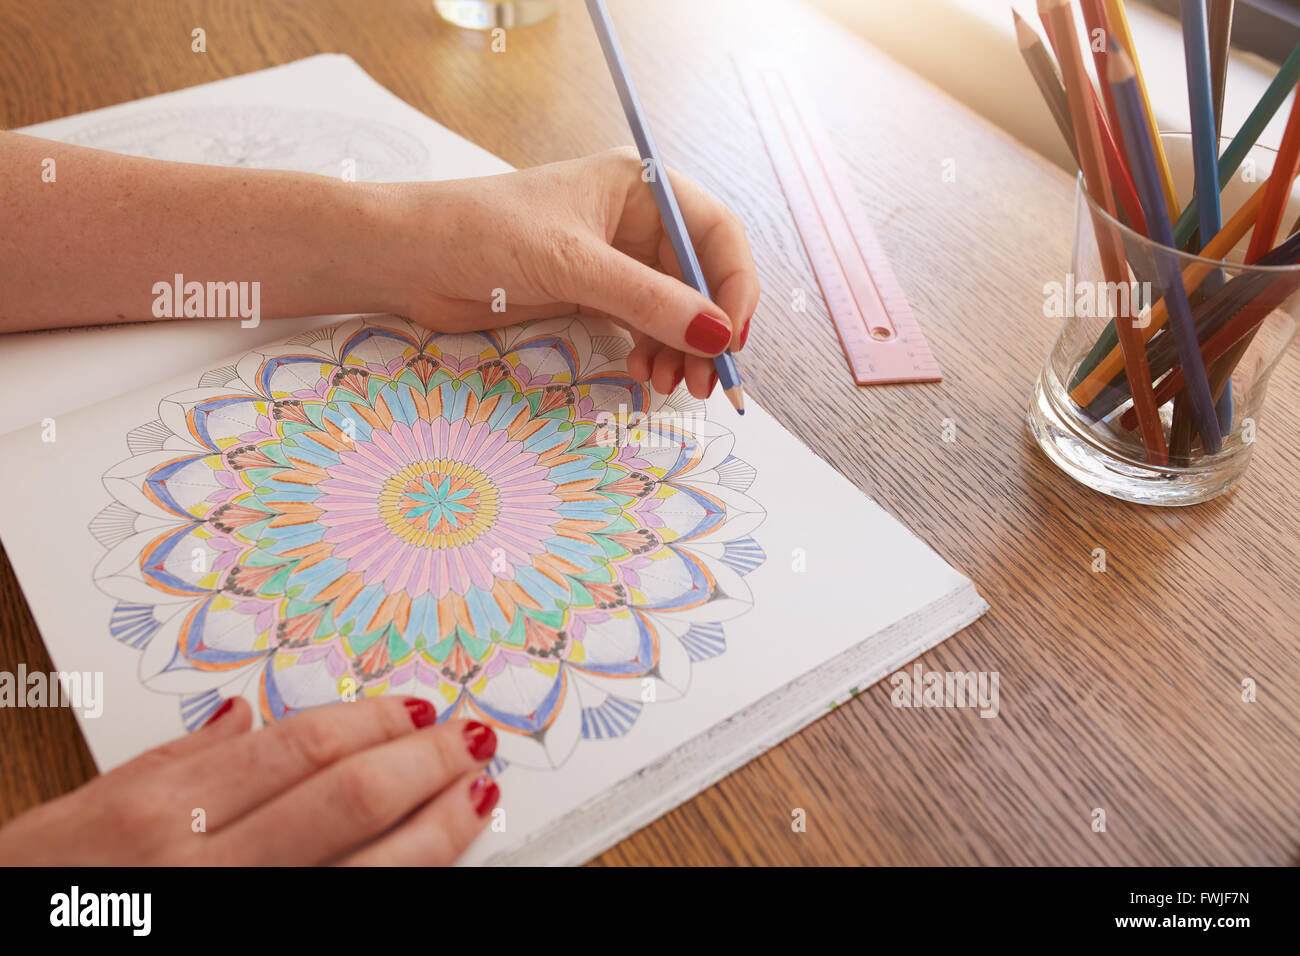 Close up image of woman hands drawing in adult colouring book on a table at home. - Stock Image